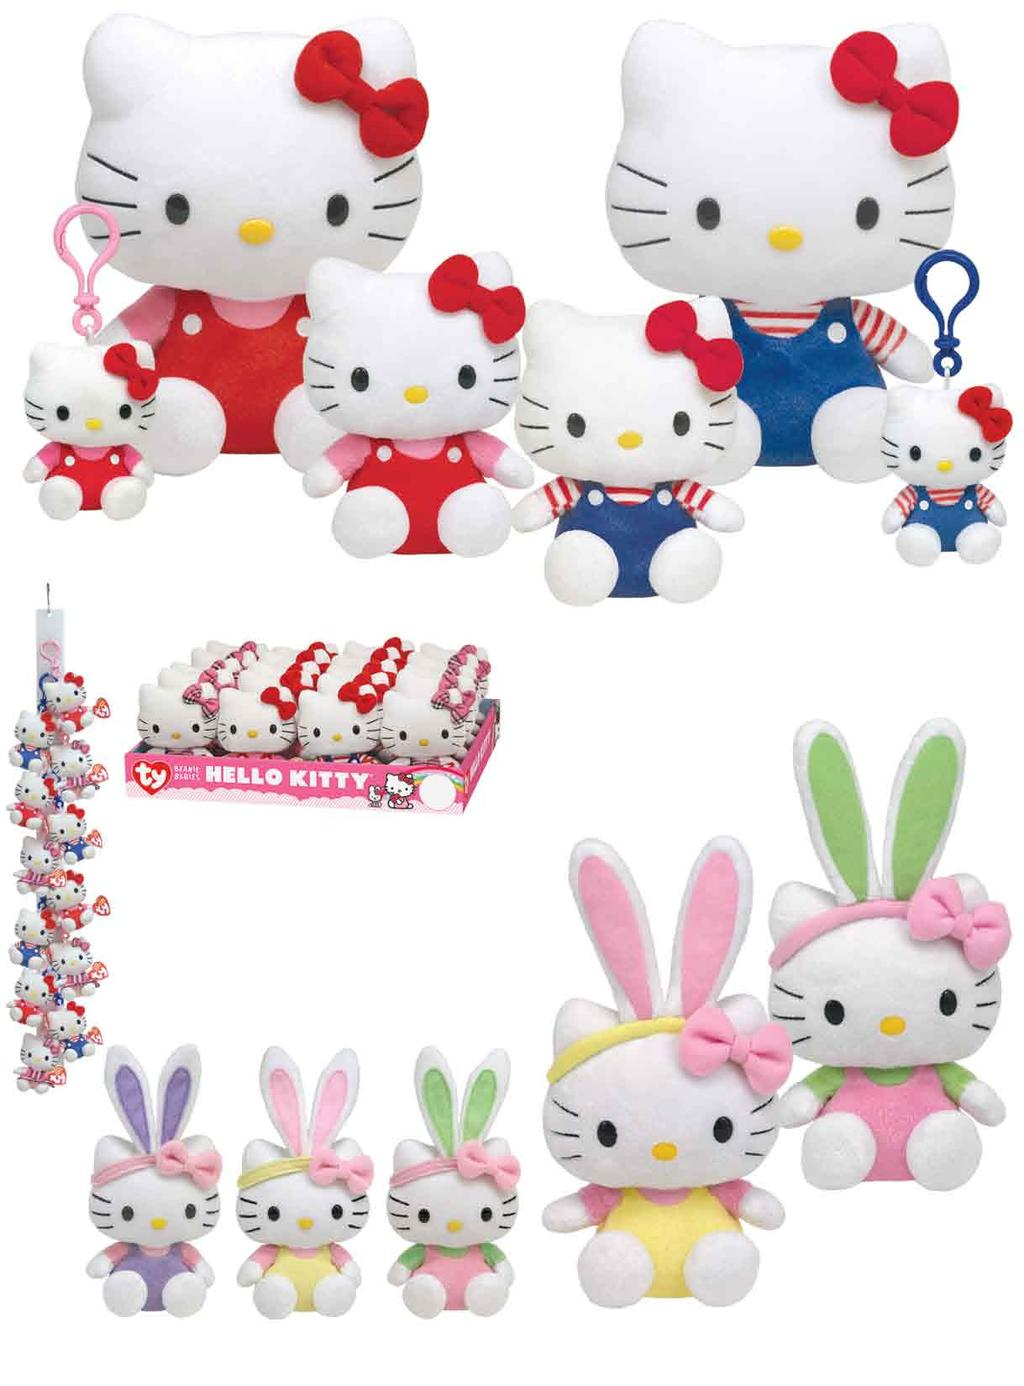 Hello Kitty CLIP 40818 LARGE 90108 BEANIE BABY 40817 BEANIE BABY 40815  LARGE 90109 CLIP 40816 40558ce7d419